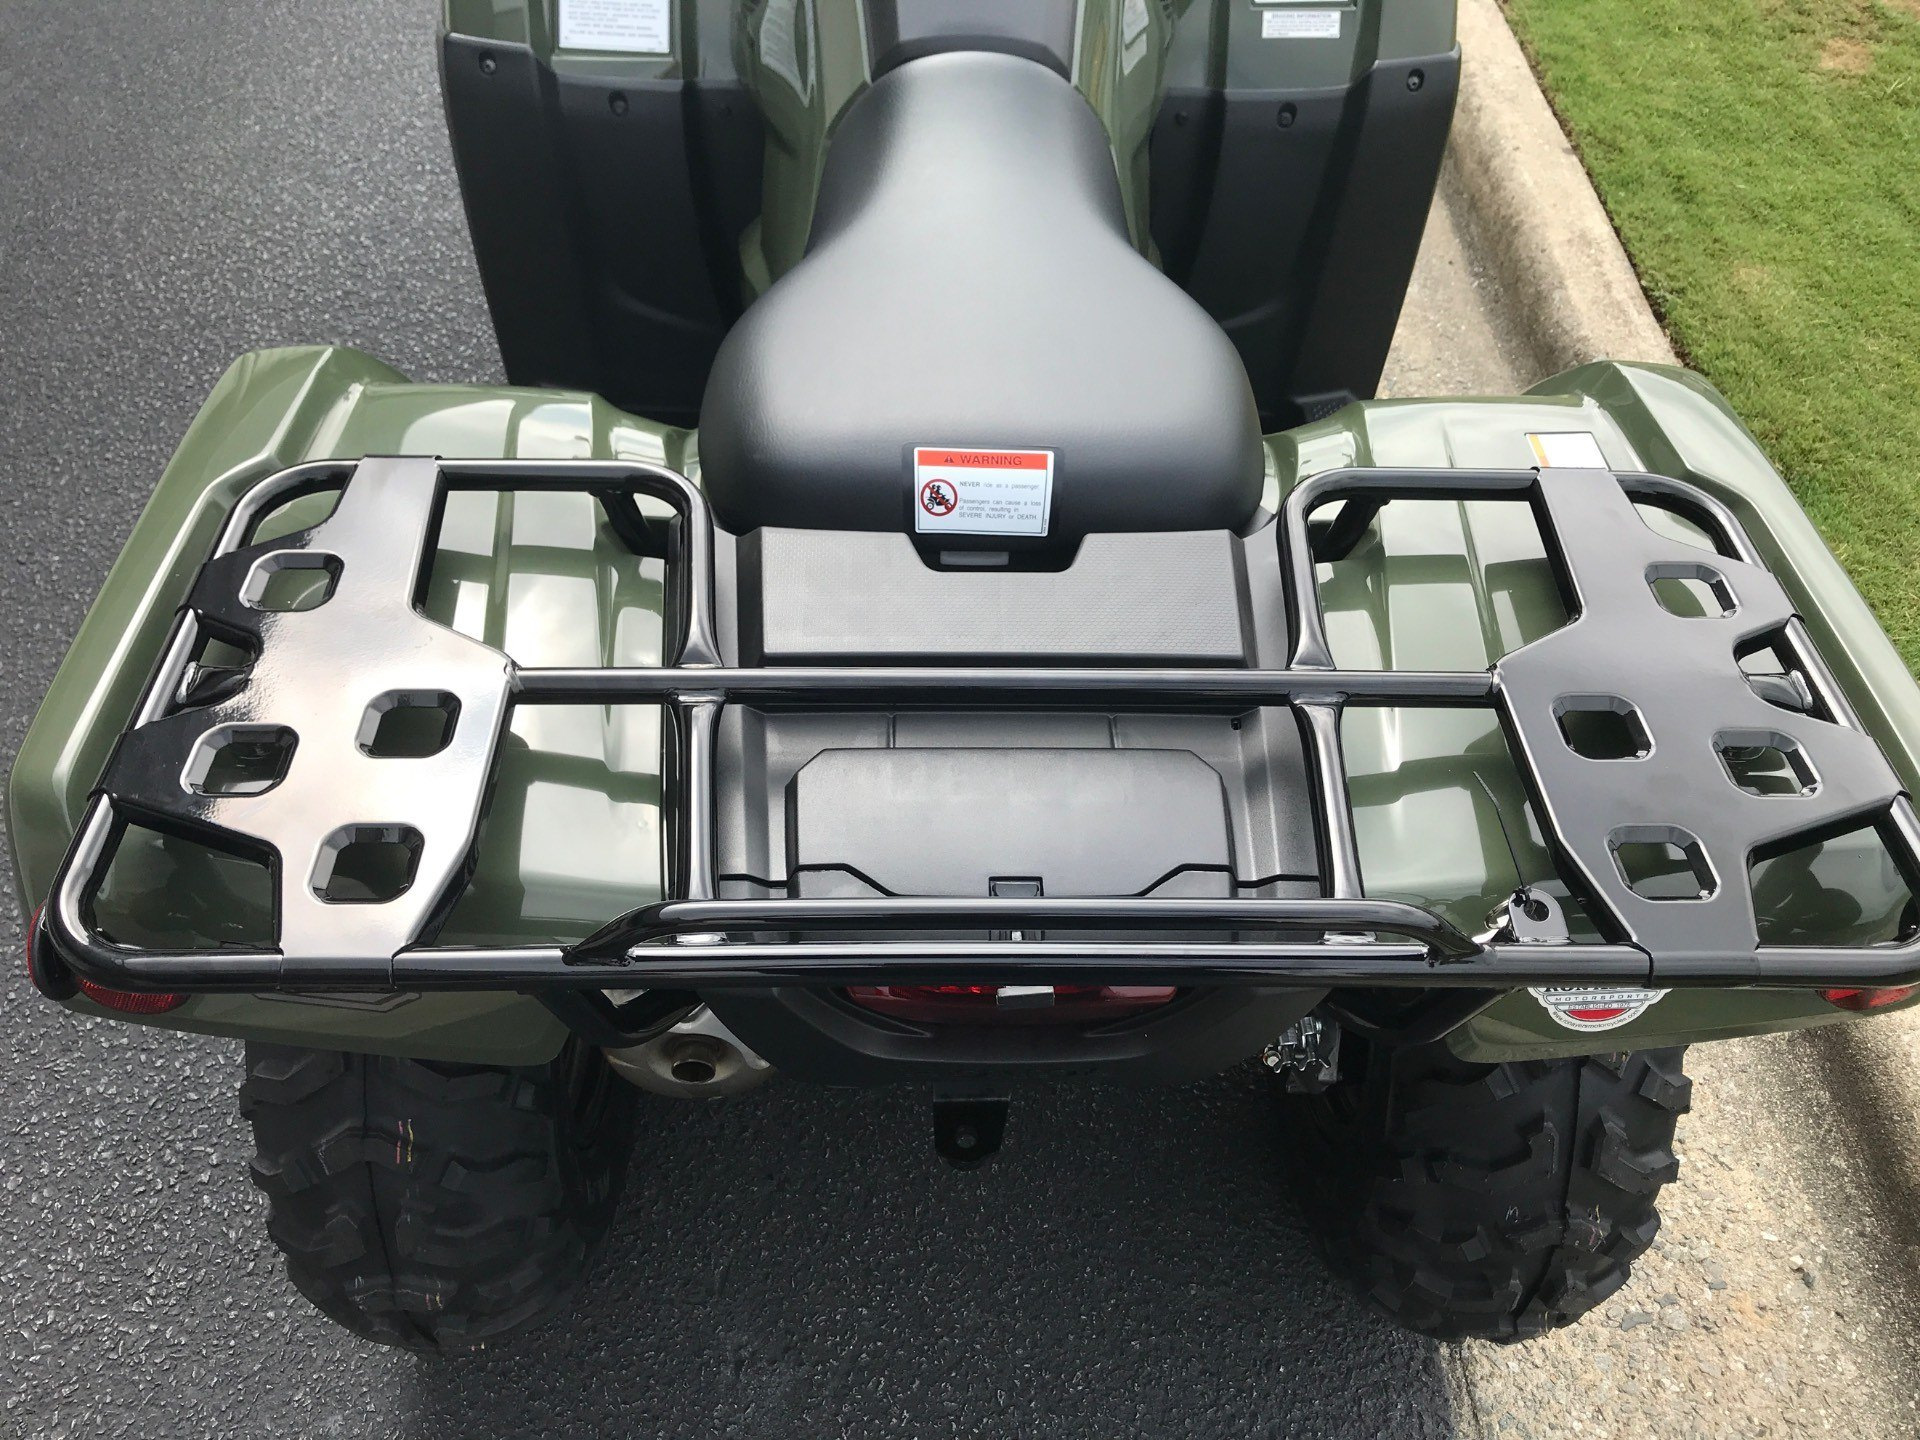 2021 Honda FourTrax Rancher 4x4 in Greenville, North Carolina - Photo 11